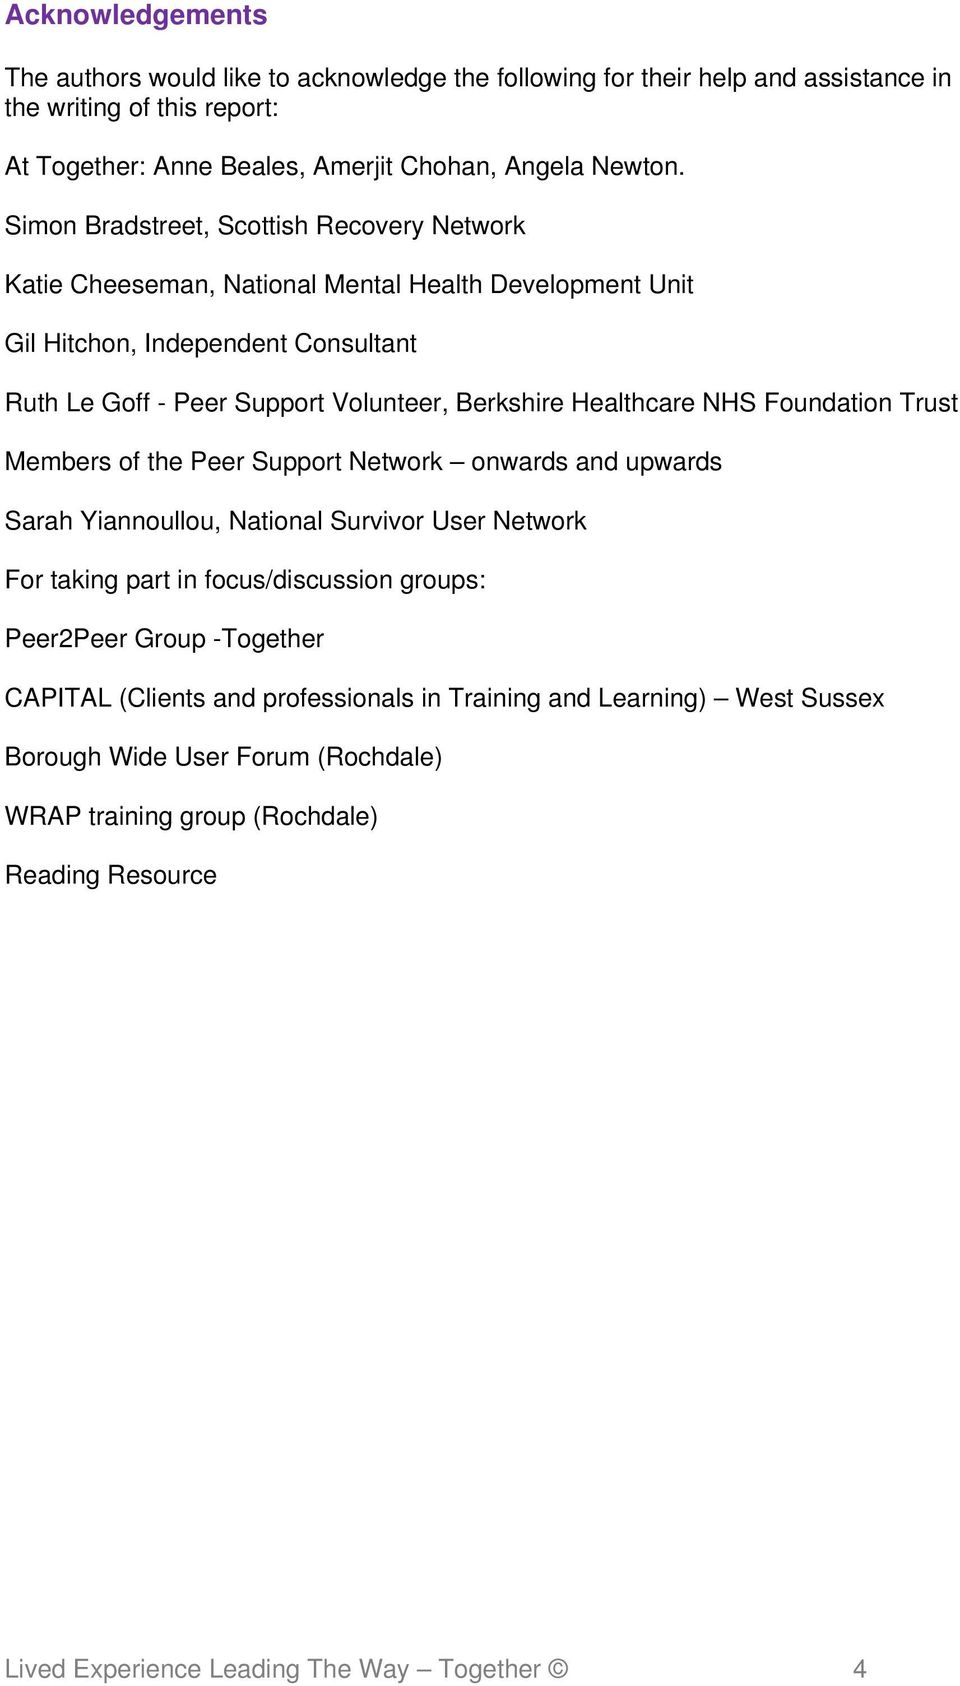 Healthcare NHS Foundation Trust Members of the Peer Support Network onwards and upwards Sarah Yiannoullou, National Survivor User Network For taking part in focus/discussion groups: Peer2Peer